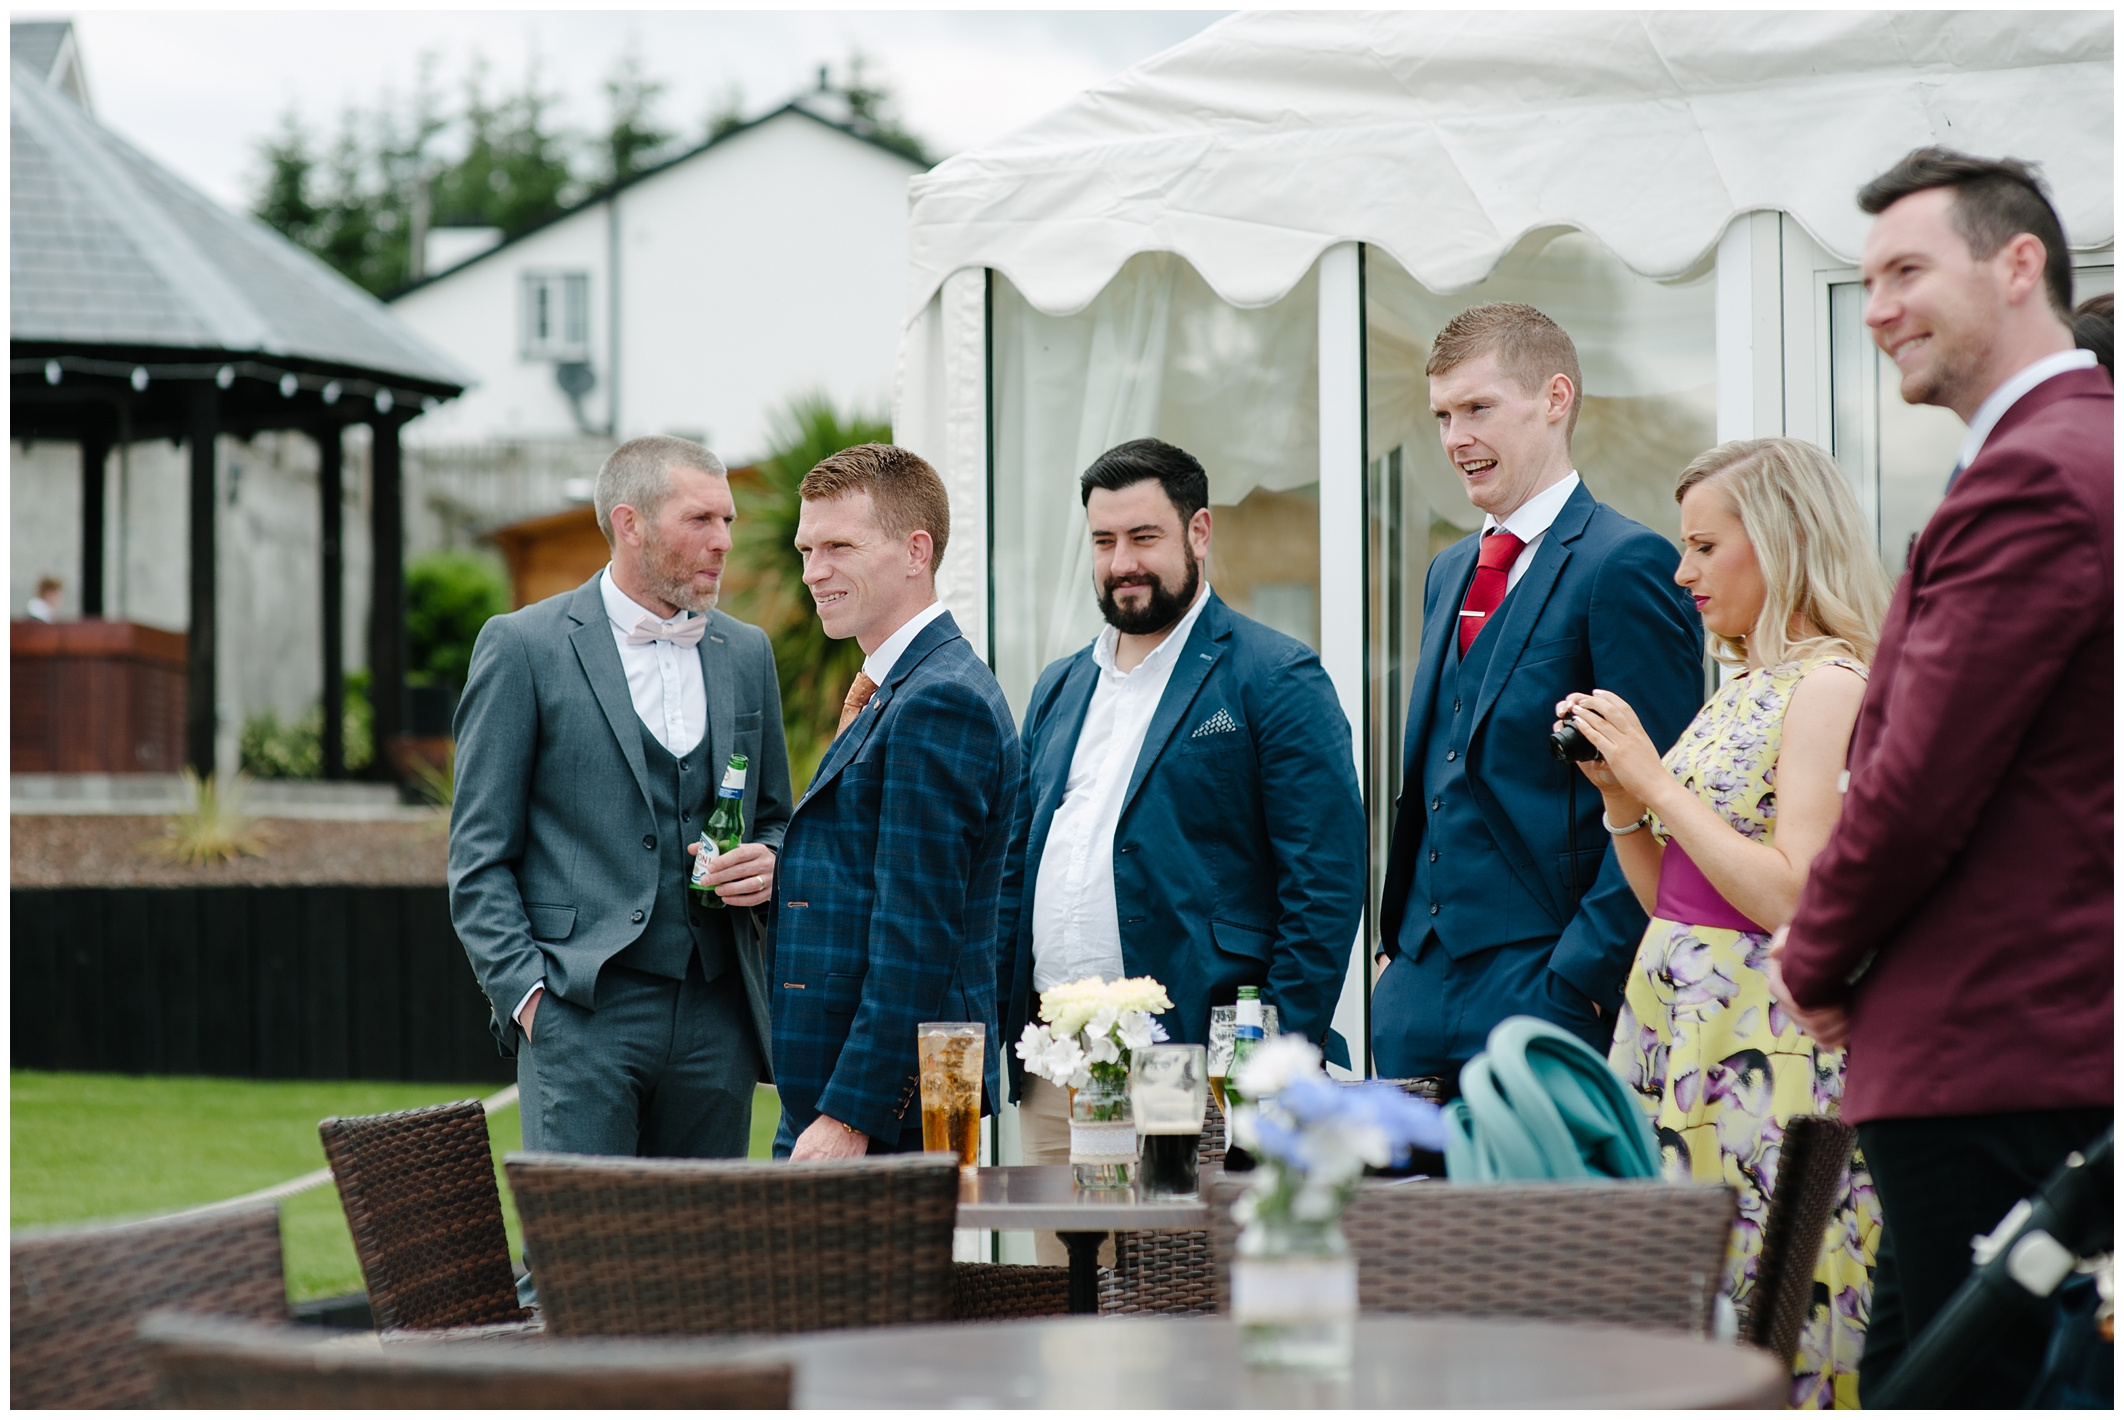 Lynsey_Andy_Rossharbour_Fermanagh_wedding_jude_browne_photography_0021.jpg